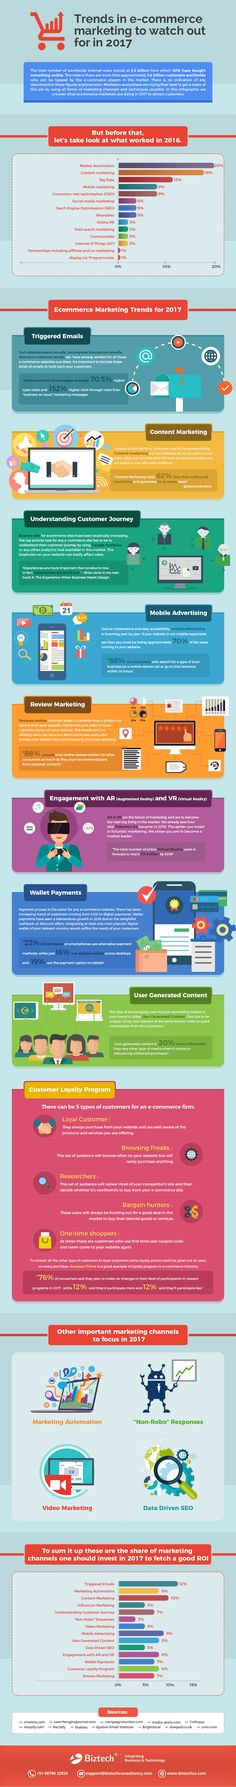 Trends In e-Commerce Marketing To Watch Out For In 2017 - #infographic